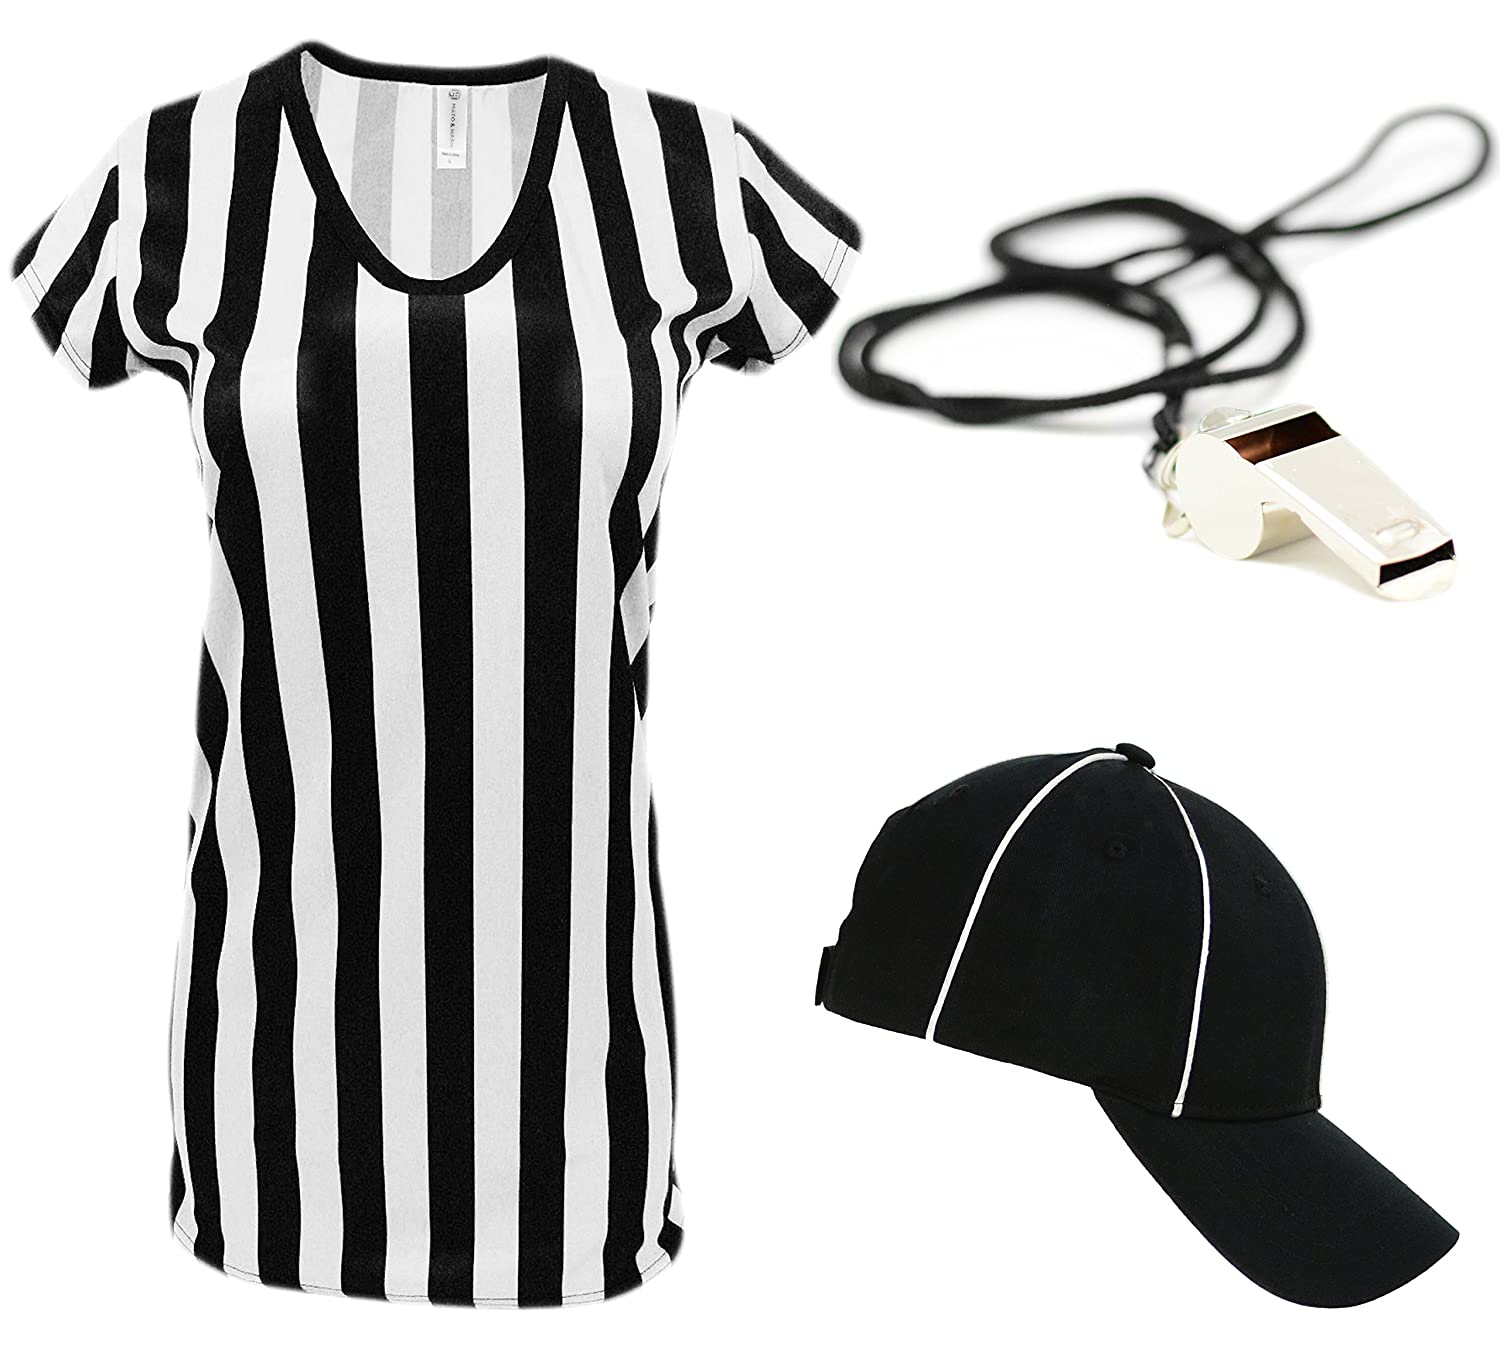 Womens Referee Shirts | Comfortable V-Neck Ref Shirt for Waitresses, Refs, More!